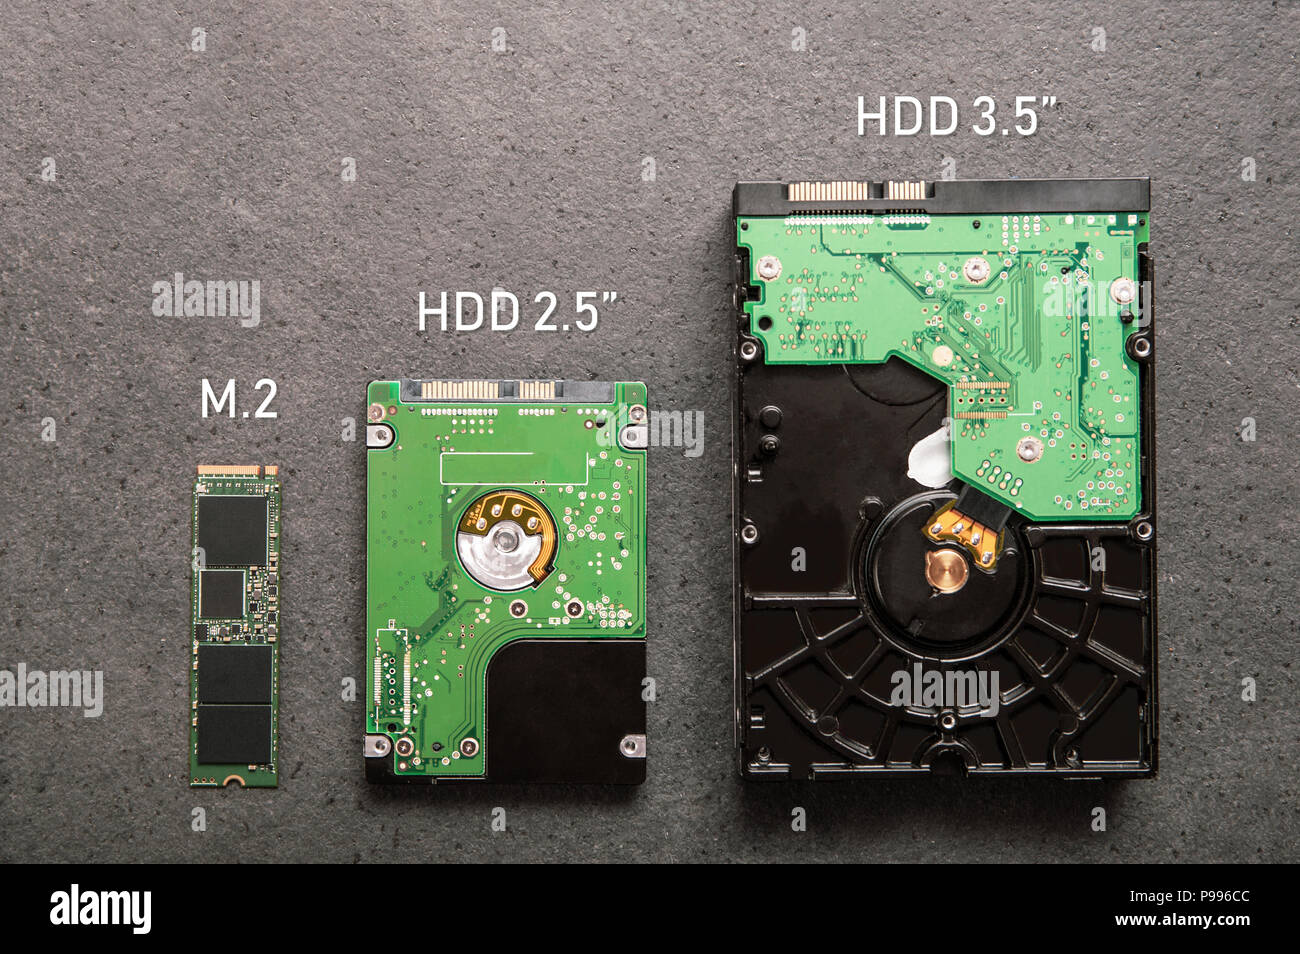 Three drives arranged on a stone slab. Comparison of SSD M.2 drive with HDD 2.5' and 3.5' - Stock Image